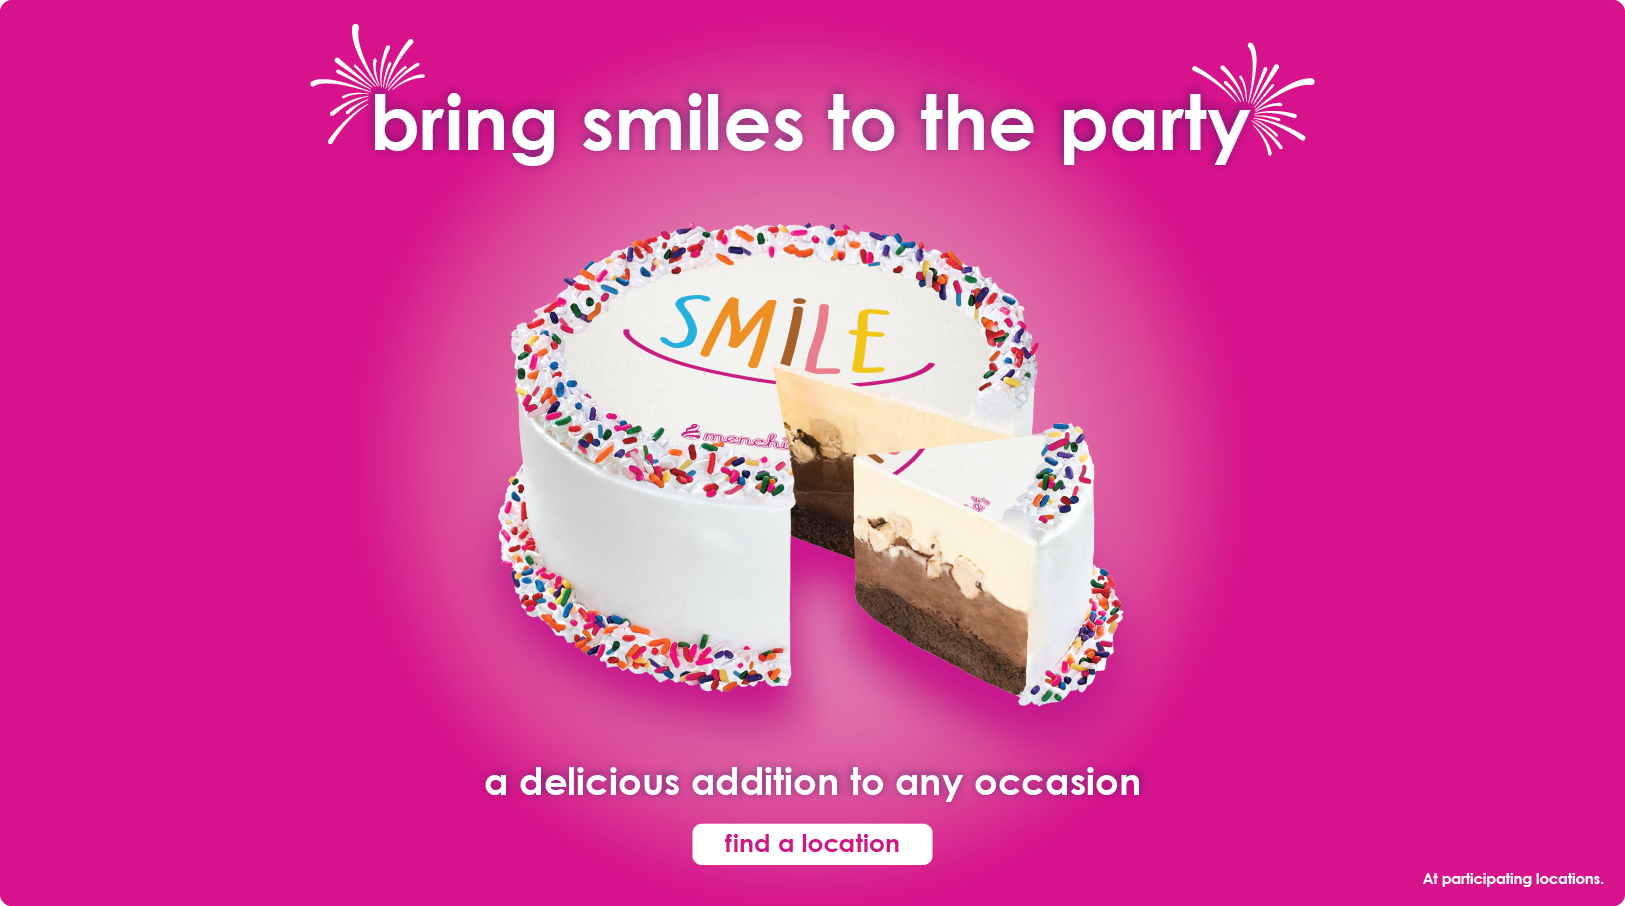 Bring smiles to the party - a delicious addition to any occasion